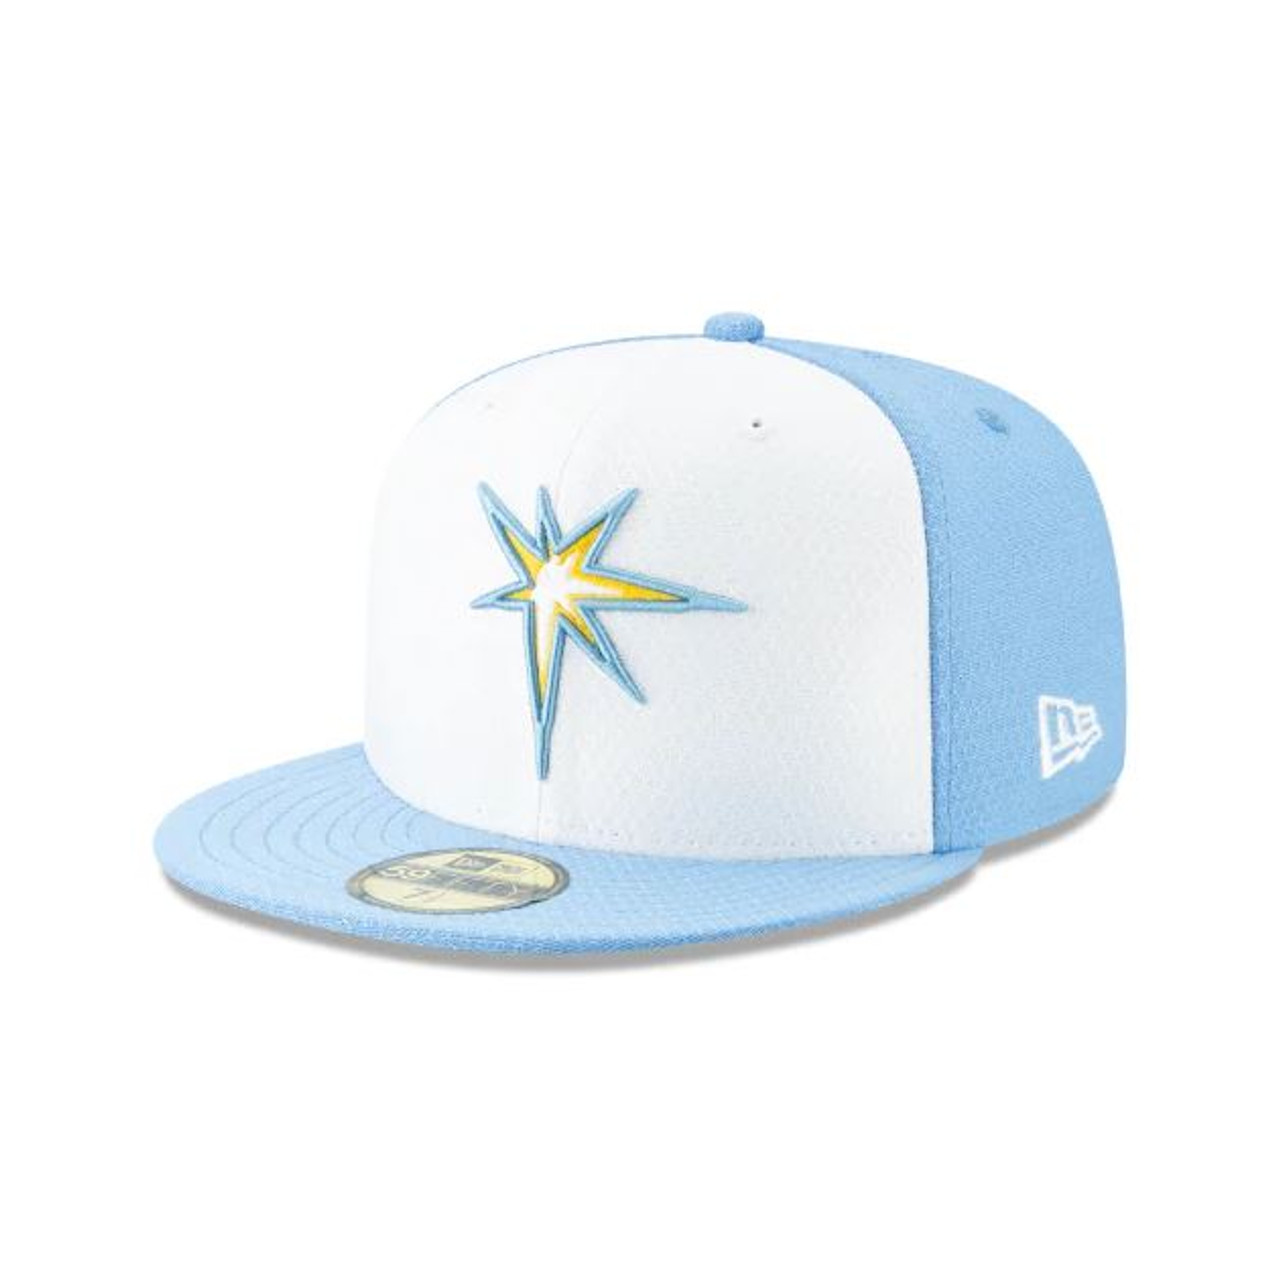 online store 66b04 86353 Men s Tampa Bay Rays New Era 59FIFTY 2019 BP White Fitted Hat. New Era